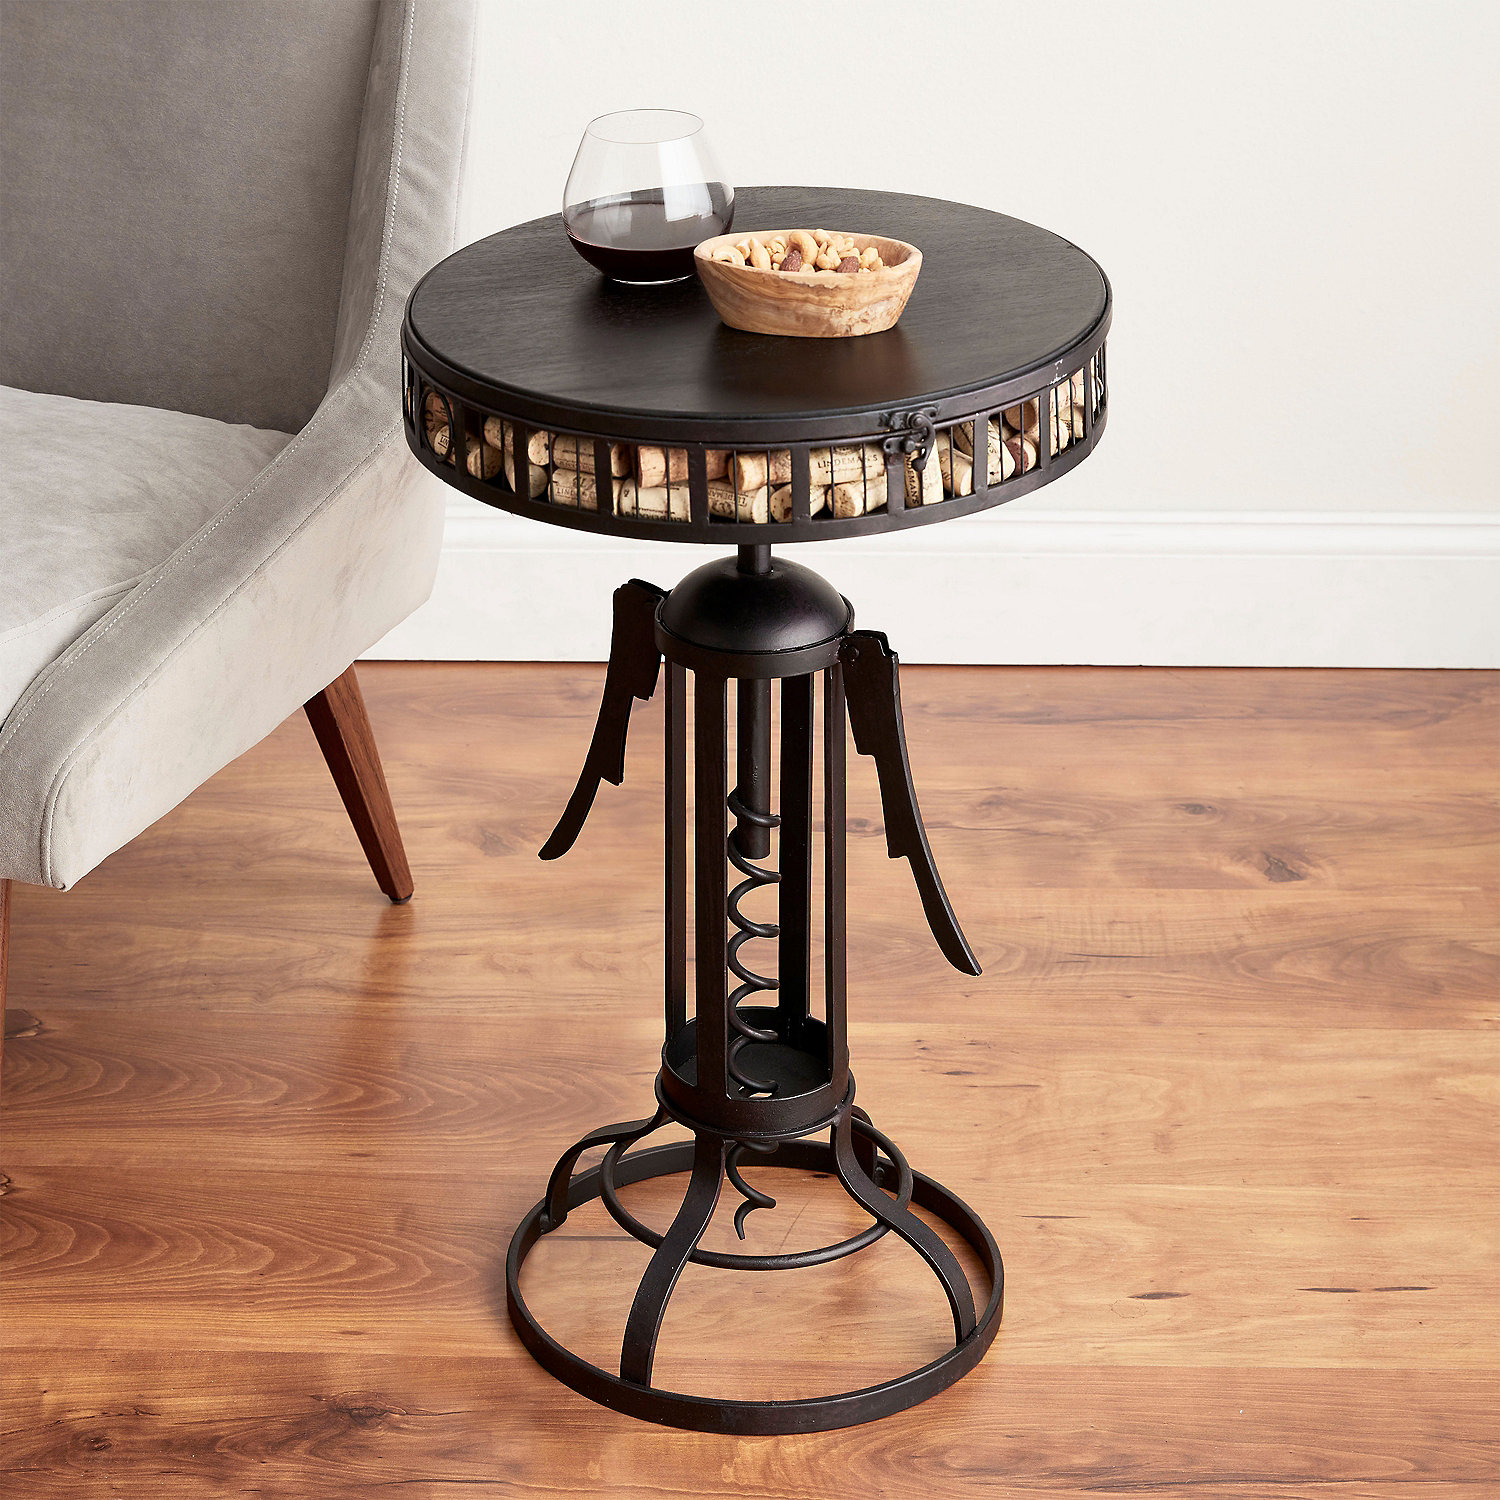 Winged Corkscrew Cork Catcher Accent Table Wine Enthusiast